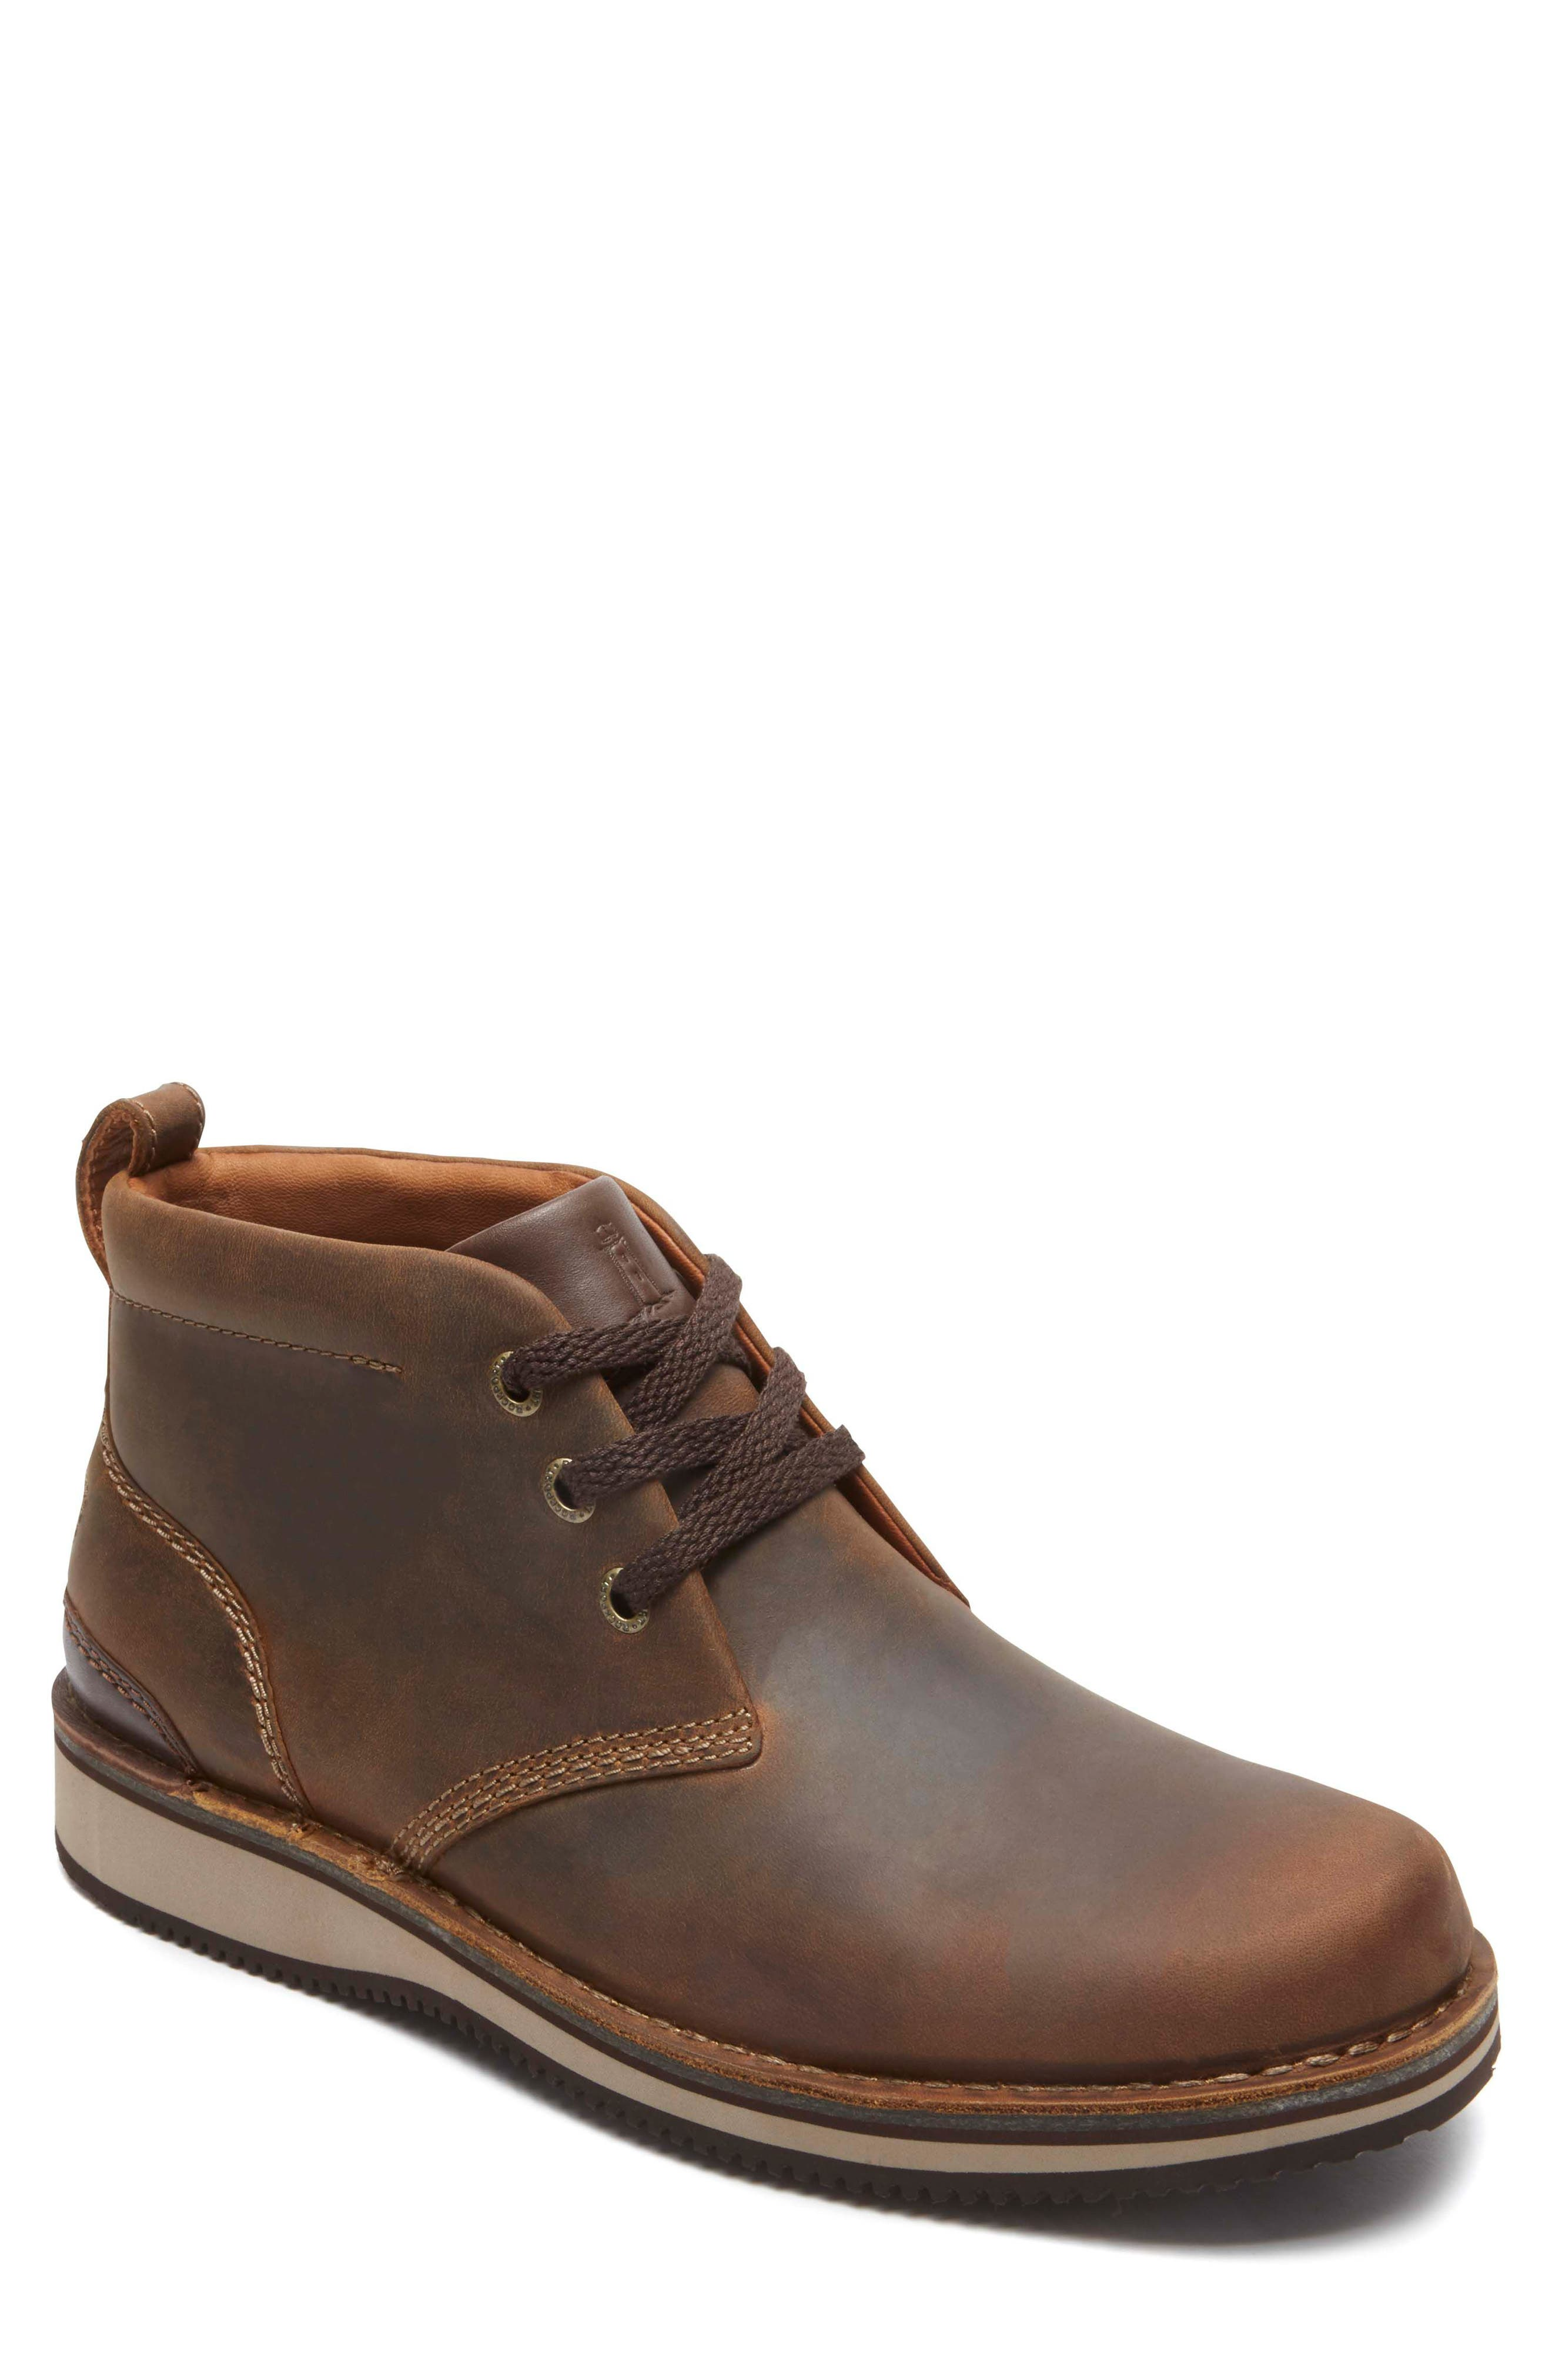 'Prestige Point' Chukka Boot,                             Main thumbnail 1, color,                             Beeswax Leather